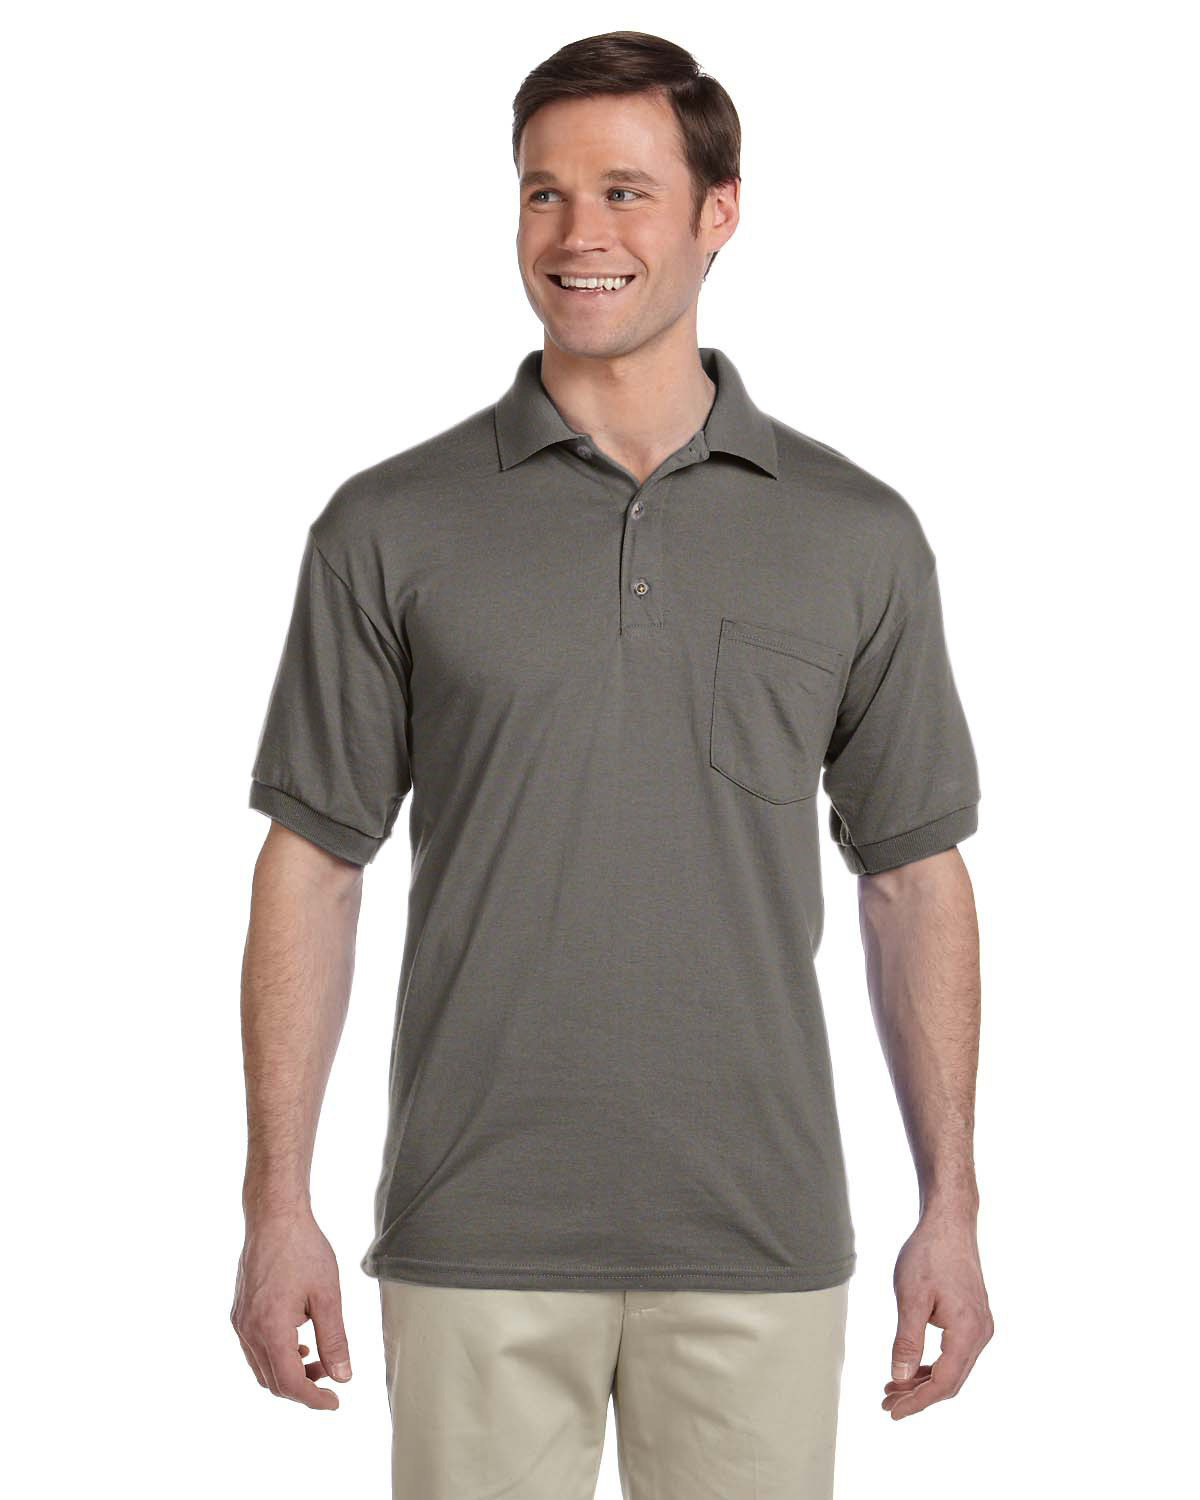 50//50 Jersey Polo With Pocket Style # G890 - Original Label Black S - By Gildan Adult 6 Oz